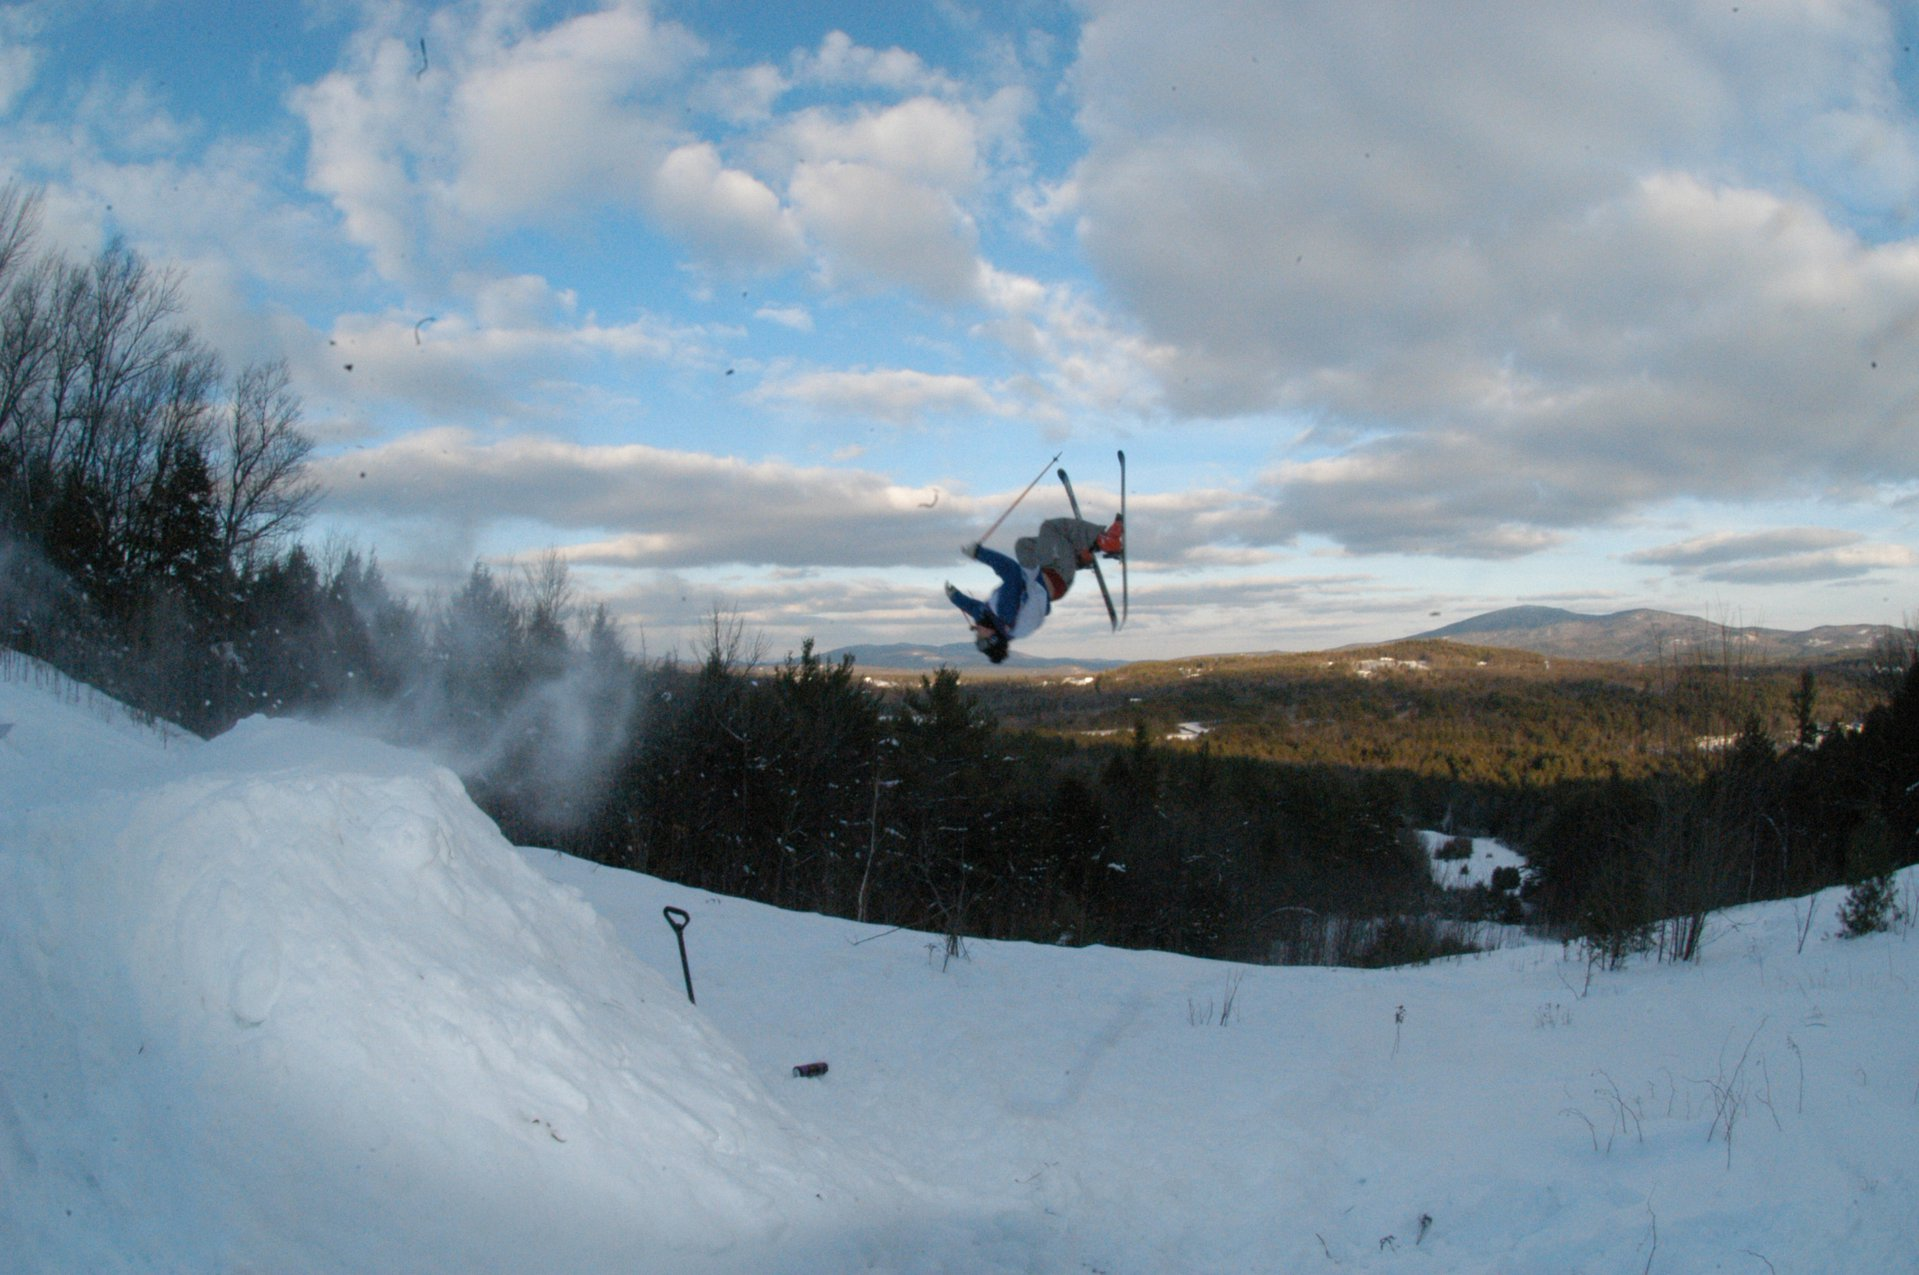 New Hampshire Backcountry Double Back